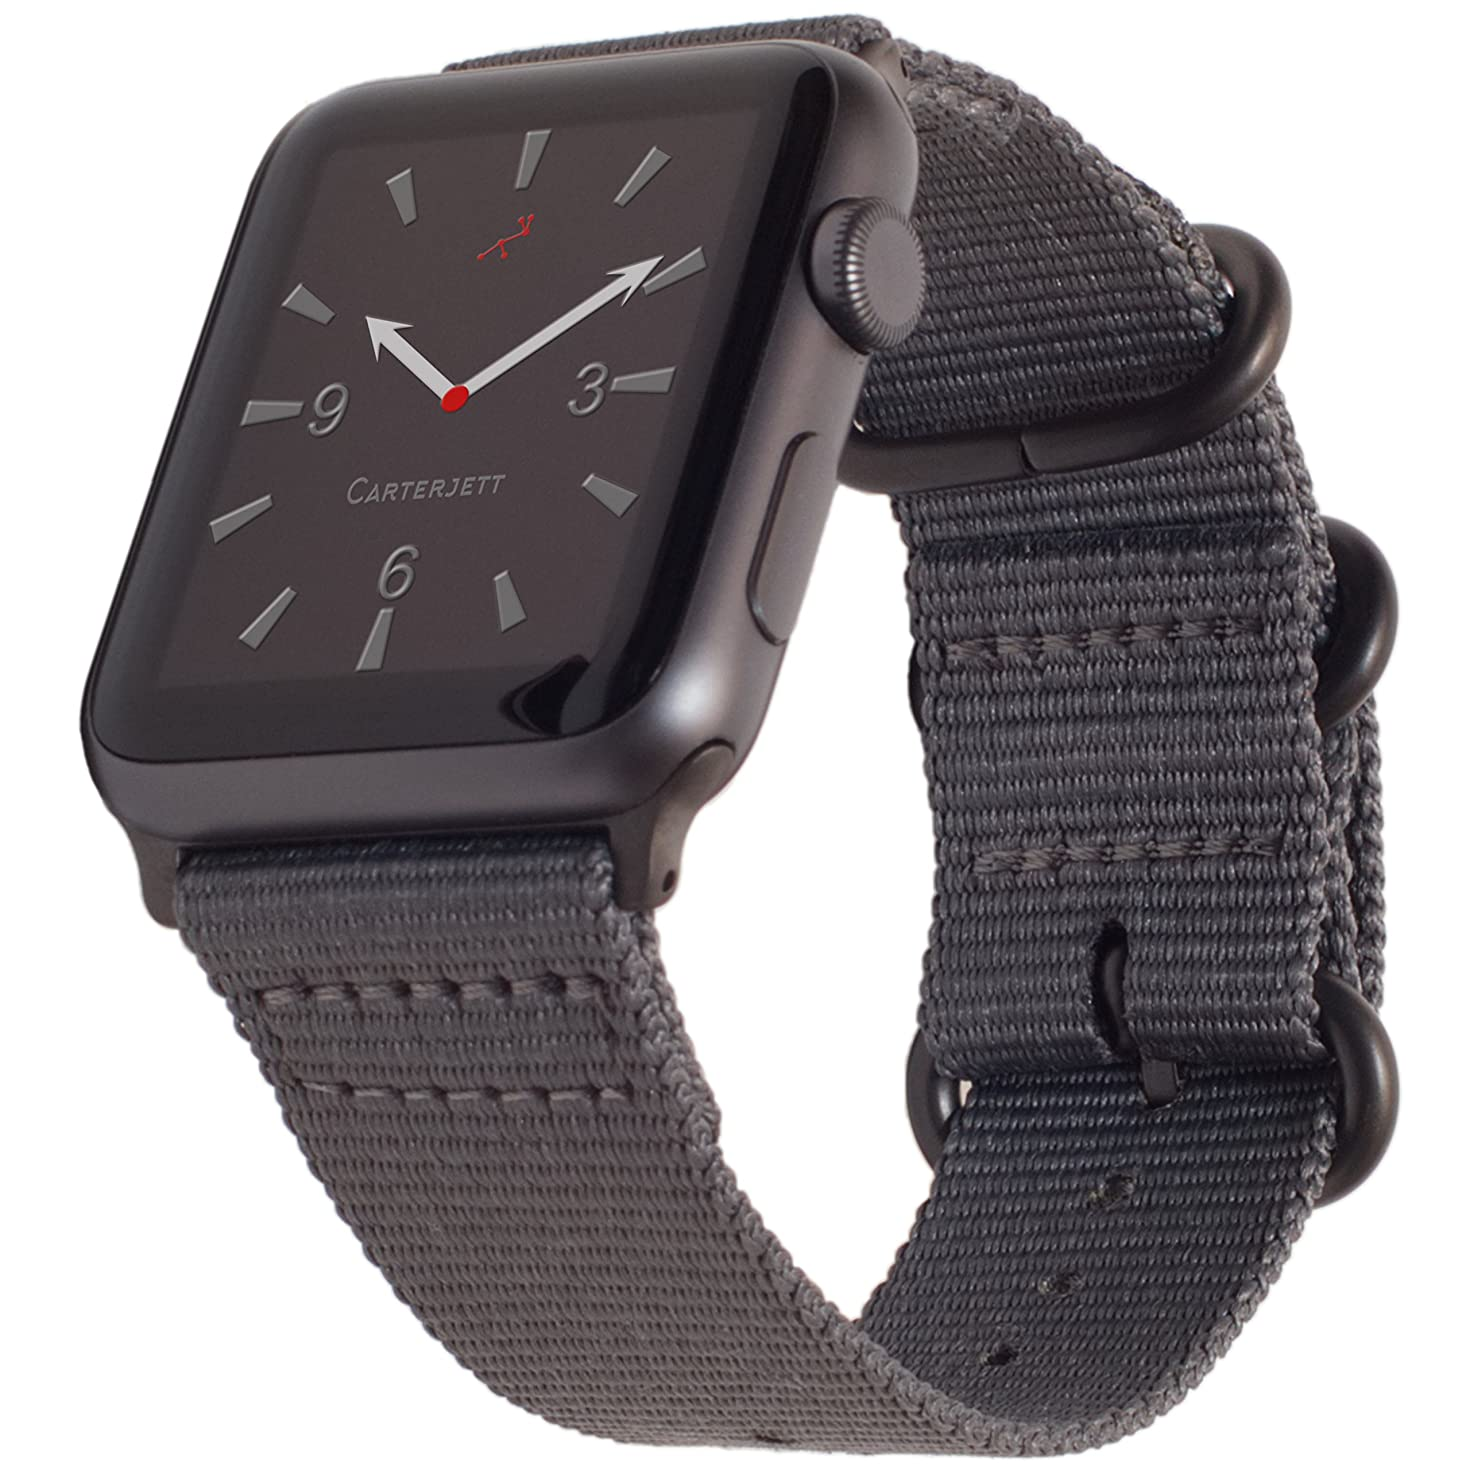 Carterjett Compatible Apple Watch Band 42mm 44mm XXL Nylon NATO iWatch Band Replacement Strap Extra Large XL Long Woven Grey Hardware Compatible Apple Watch Sport Series 4 3 2 1 (42 44 XXL Gray)